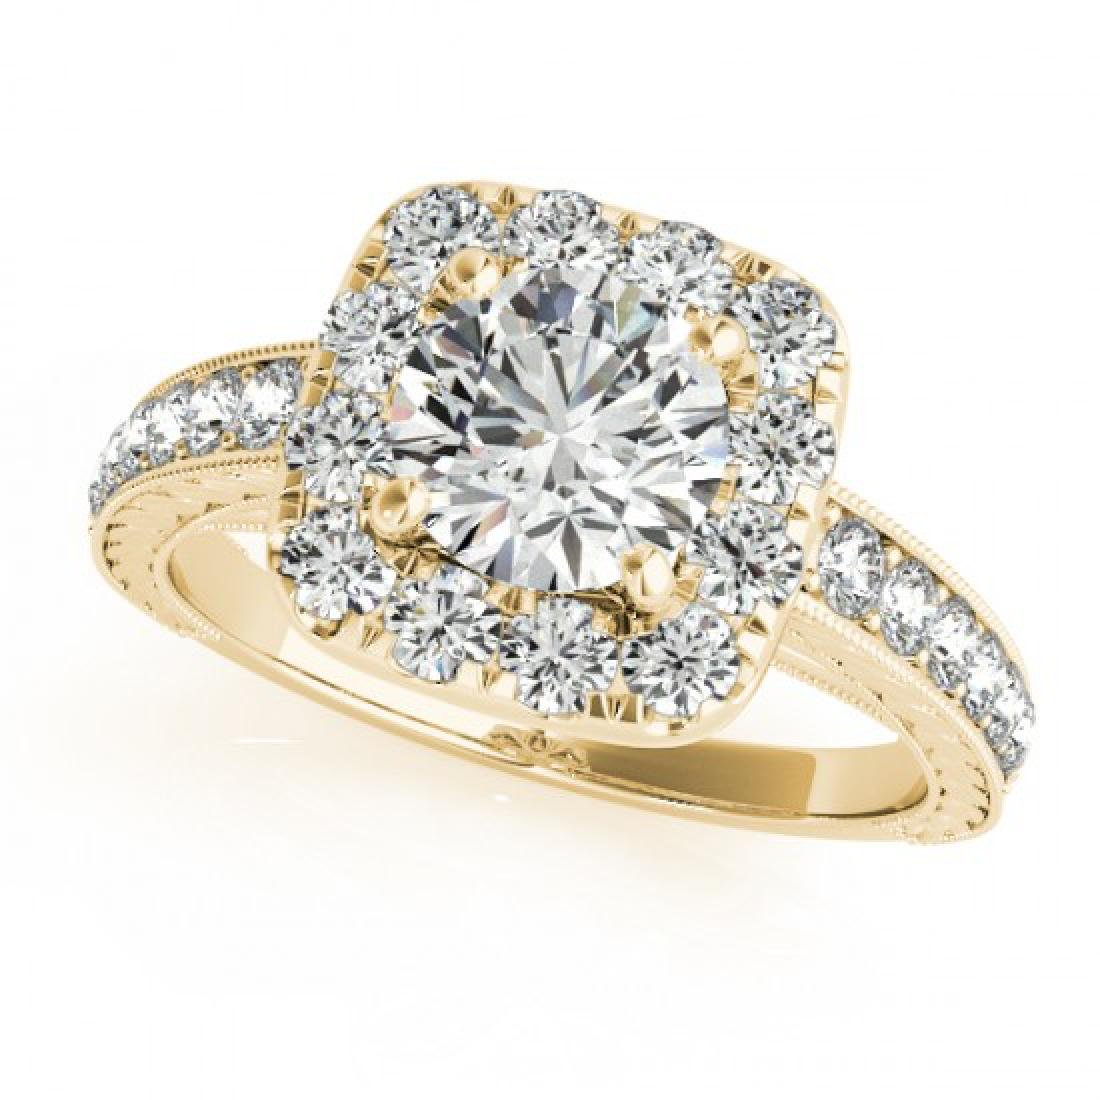 1.11 CTW Certified VS/SI Diamond Solitaire Halo Ring